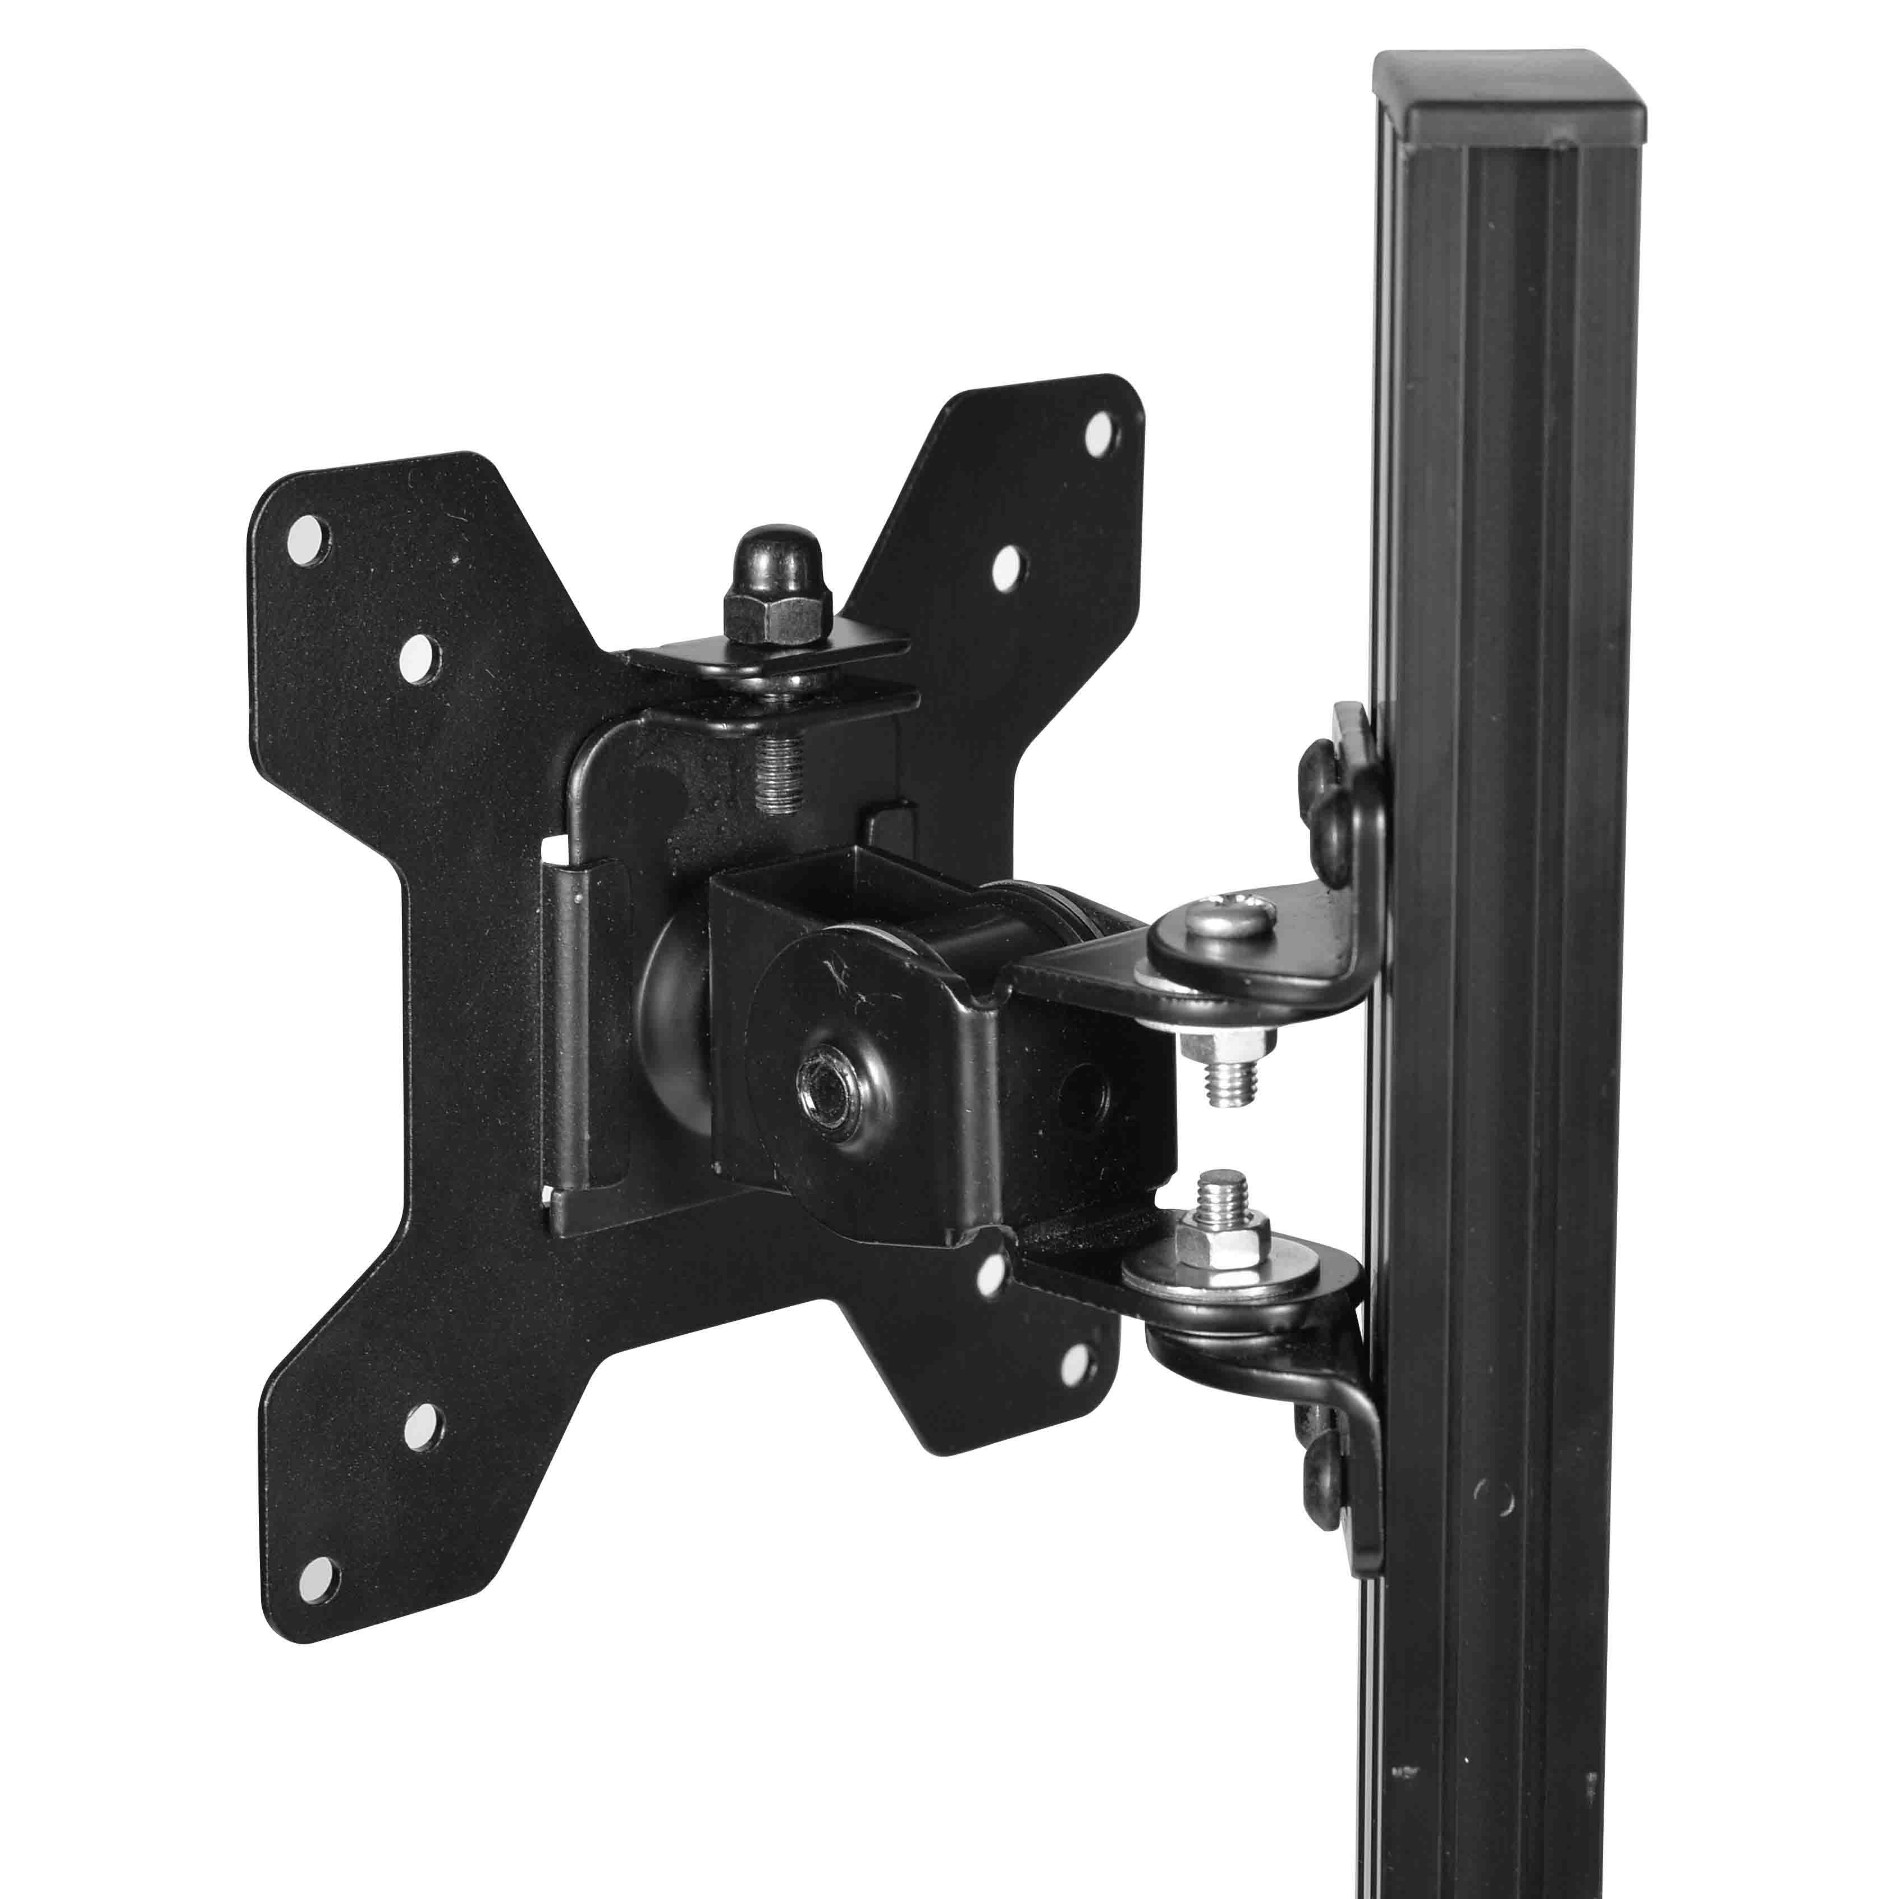 One screen Desk Mounts Manufacturers, One screen Desk Mounts Factory, Supply One screen Desk Mounts